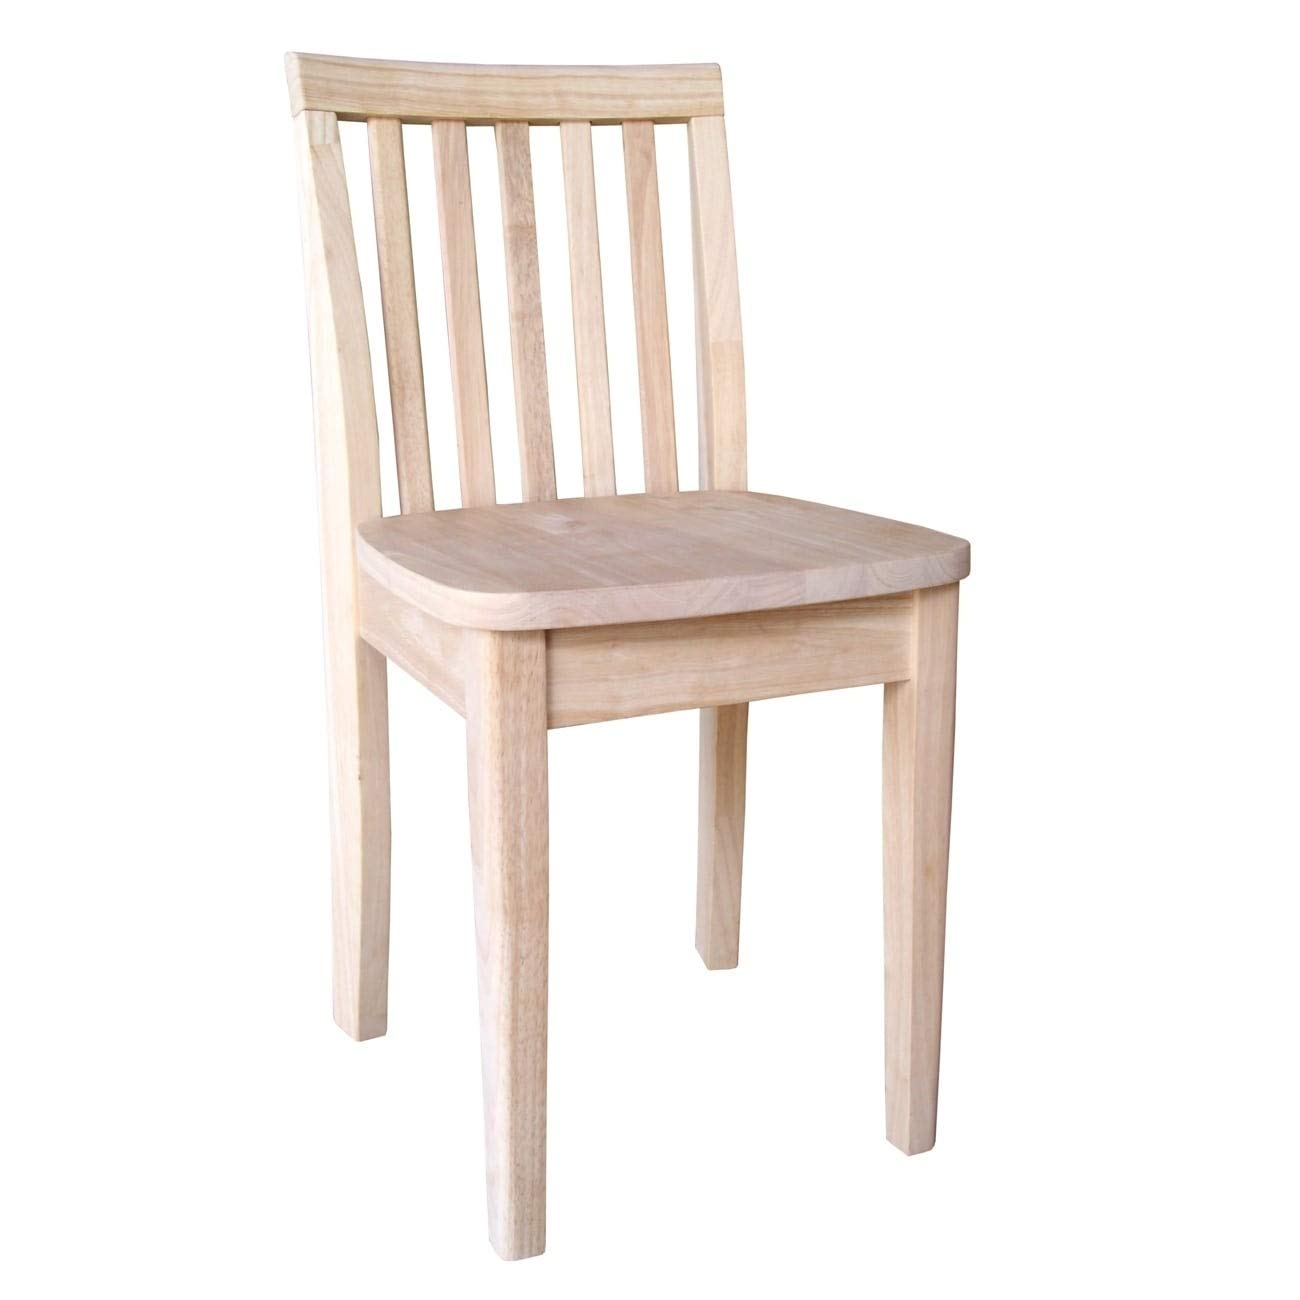 International Concepts Unfinished Juvenile Chair with Box Seat Construction, Set of 2